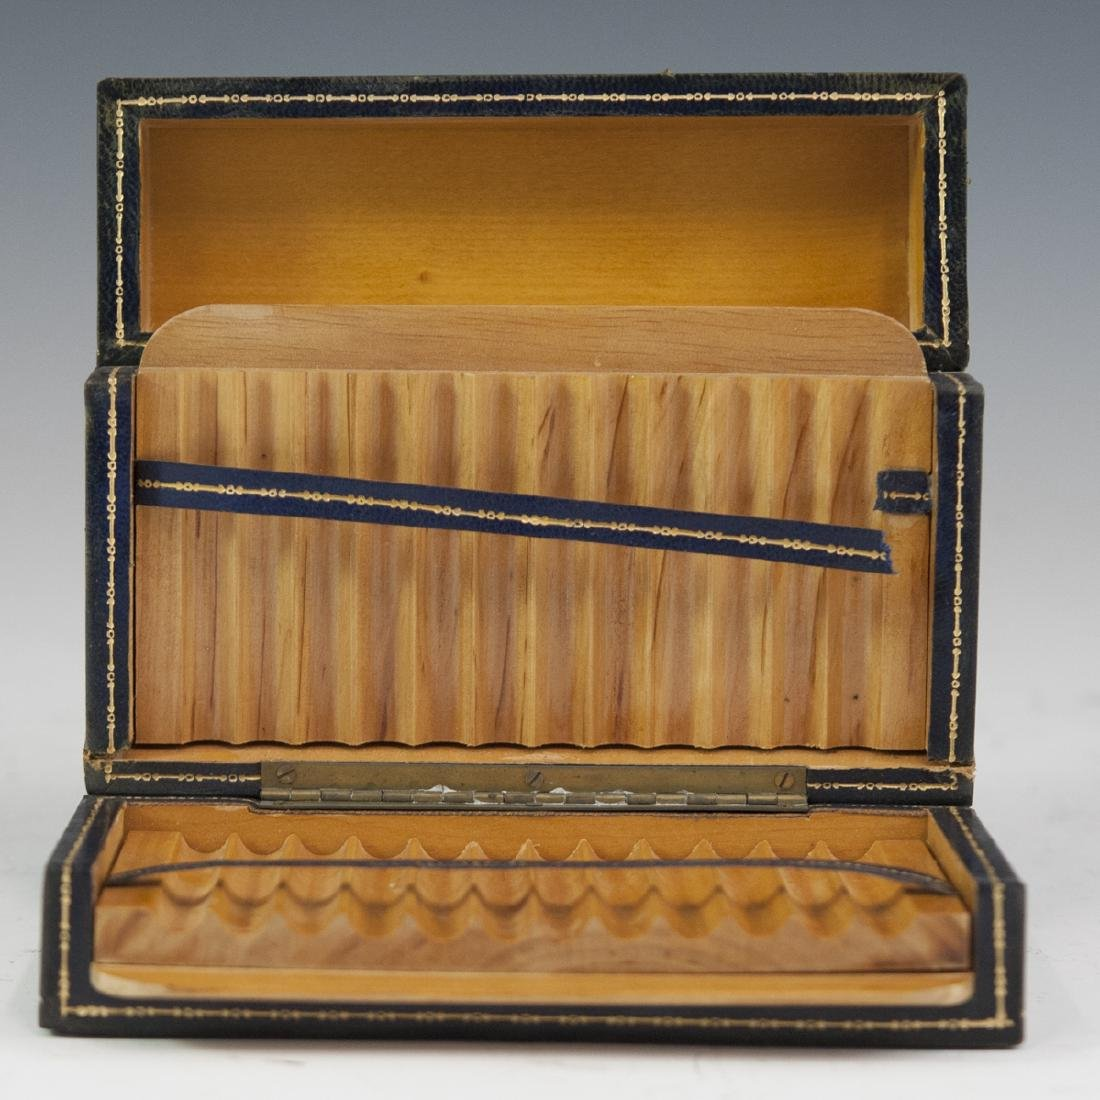 Leather Lined Wooden Cigarette Box - 2